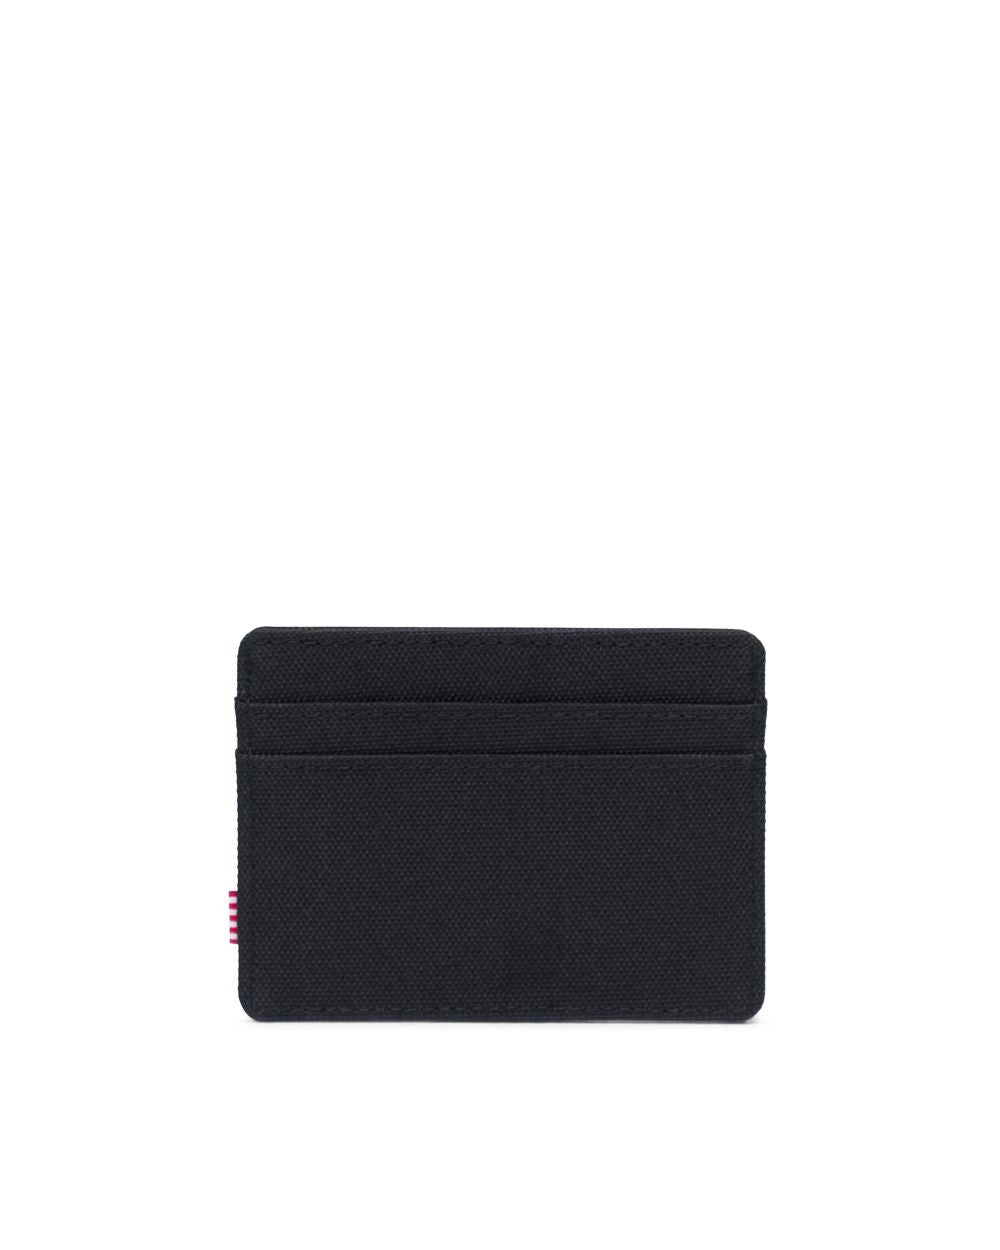 Herschel Charlie Wallet - 10 Options From $24.99